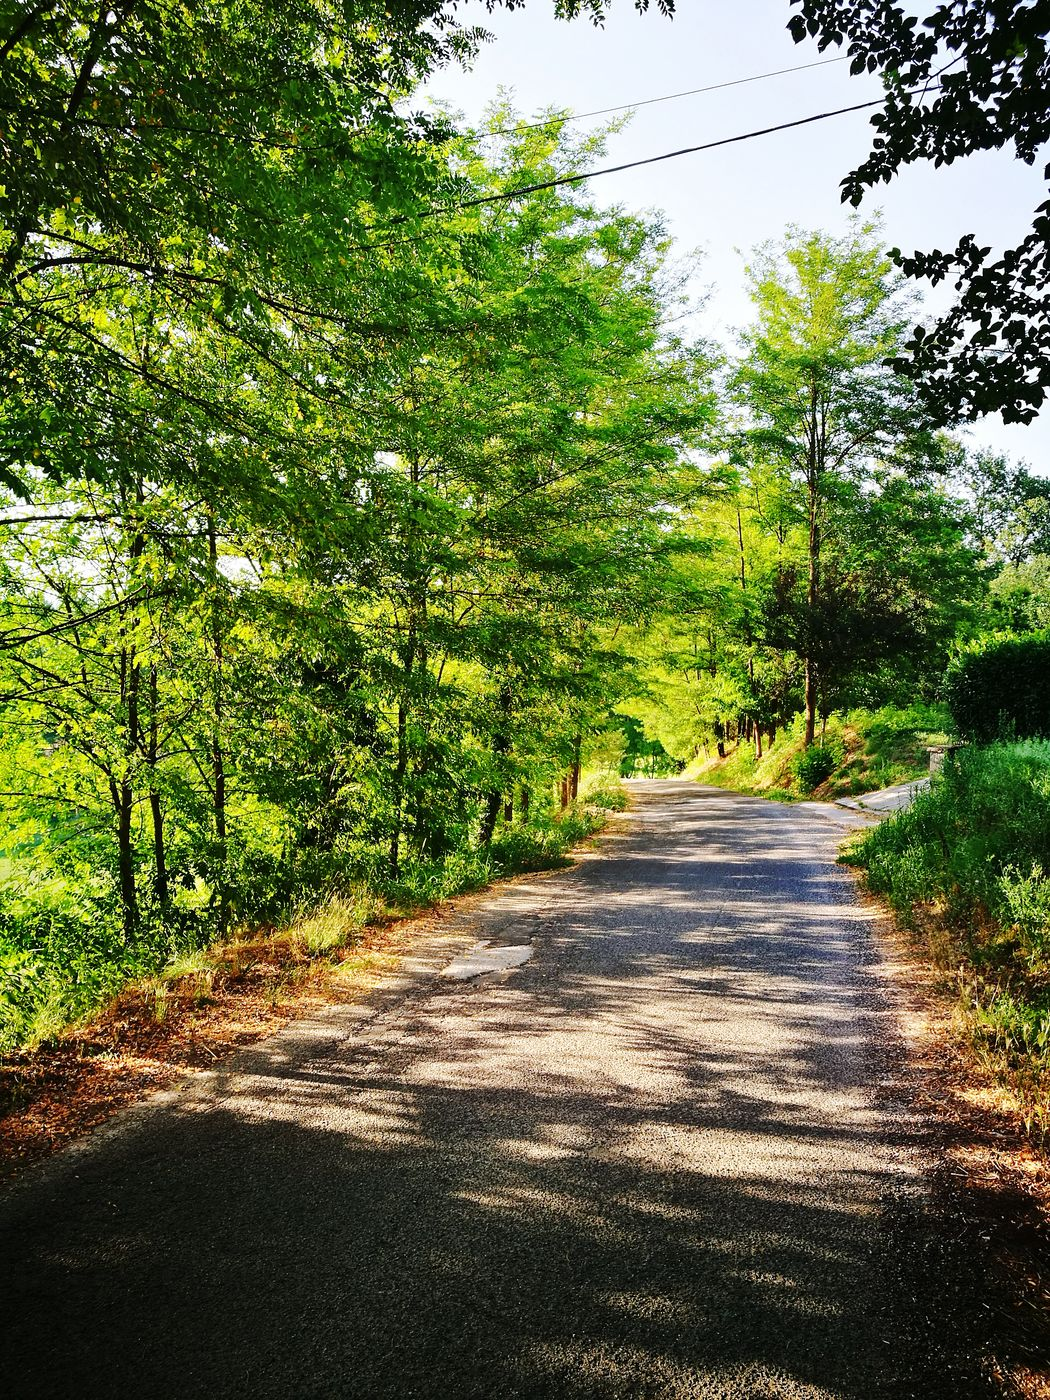 Tree The Way Forward Nature Growth Day No People Outdoors Shadow Sunlight Tranquility Beauty In Nature Green Color Scenics Grass Sky Walking Around Walking Walking Around Taking PicturesNature Beautiful Place Italianlandscape Countryside Life Wonderful Place Italycountryside Travel